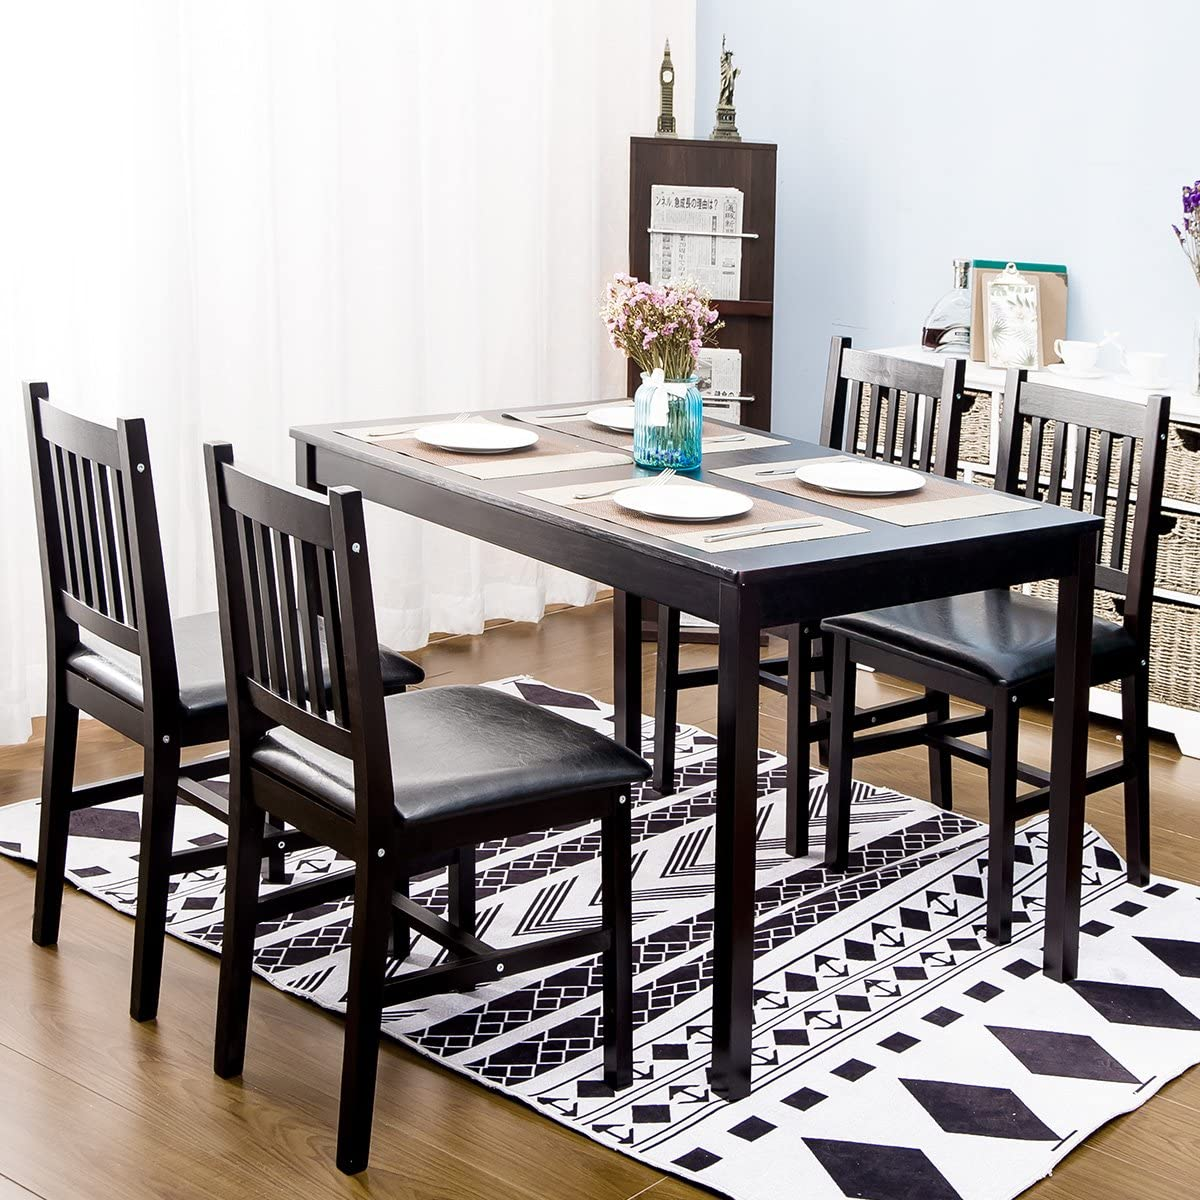 Harper\u0026Bright Designs 5 Piece Wood Dining Table Set 4 Person Home Kitchen Table and Chairs (  sc 1 st  Amazon.com & Table \u0026 Chair Sets | Amazon.com